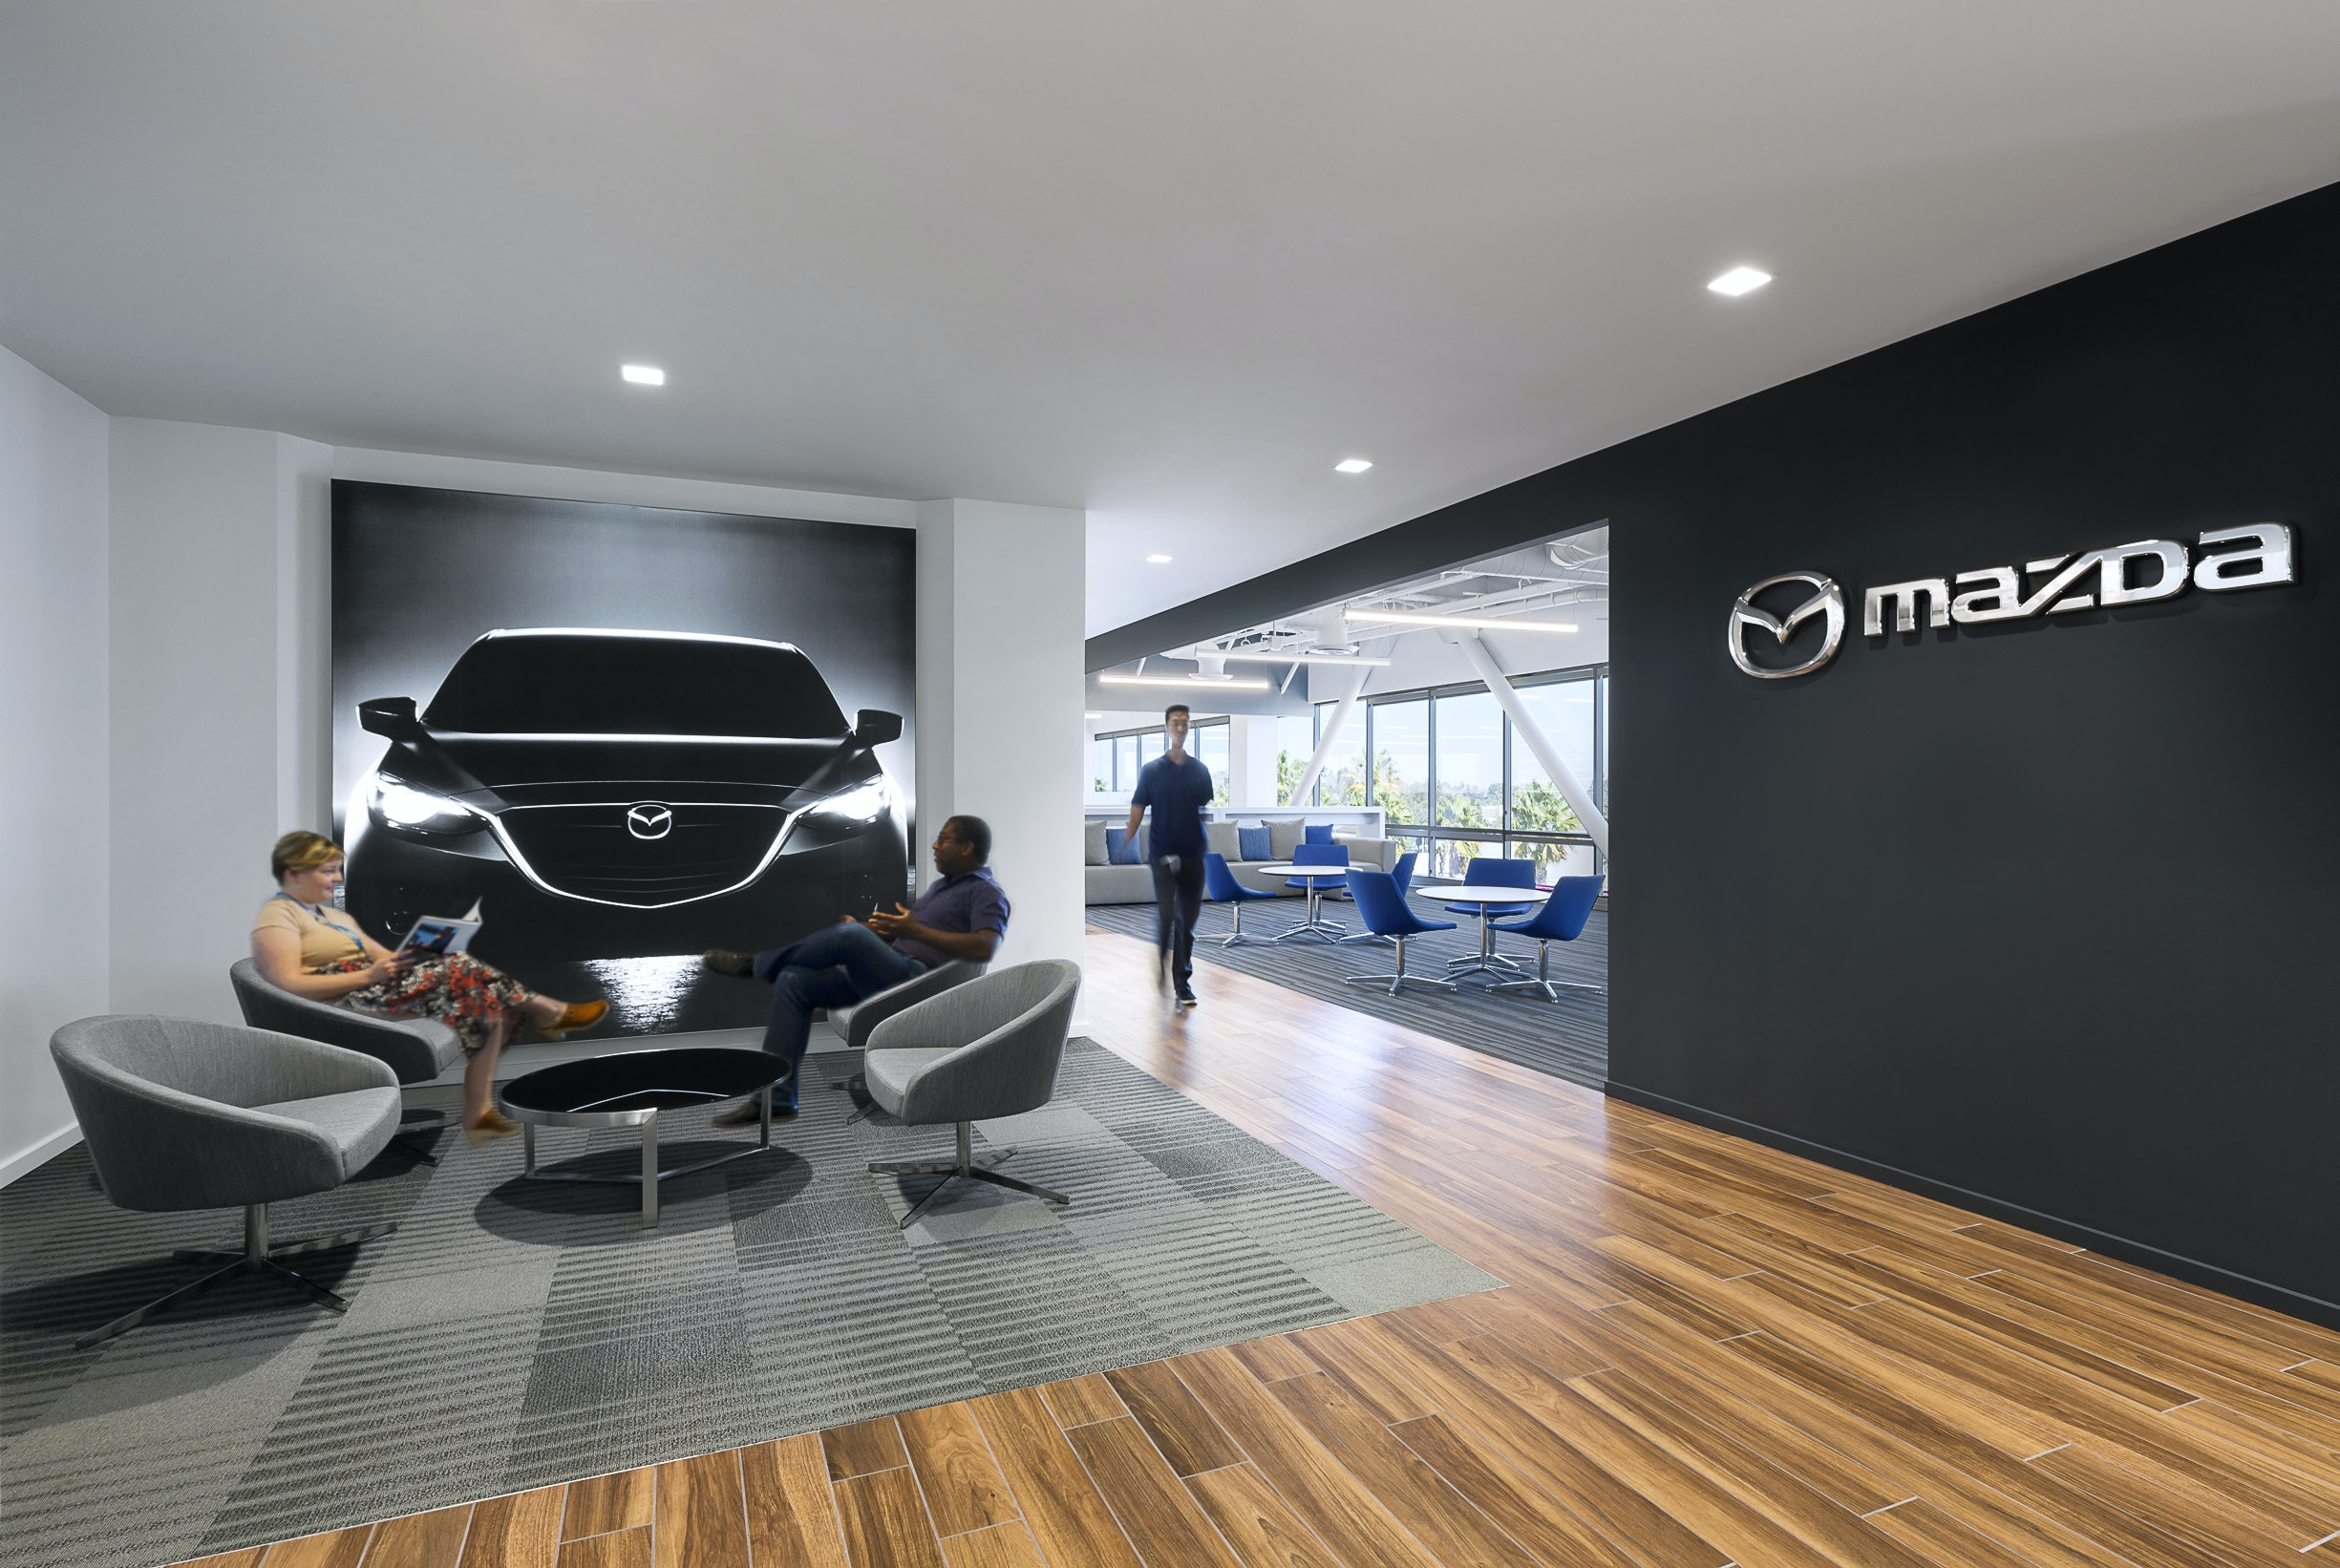 Mazda Western Region Uses Strategic Interior Updates